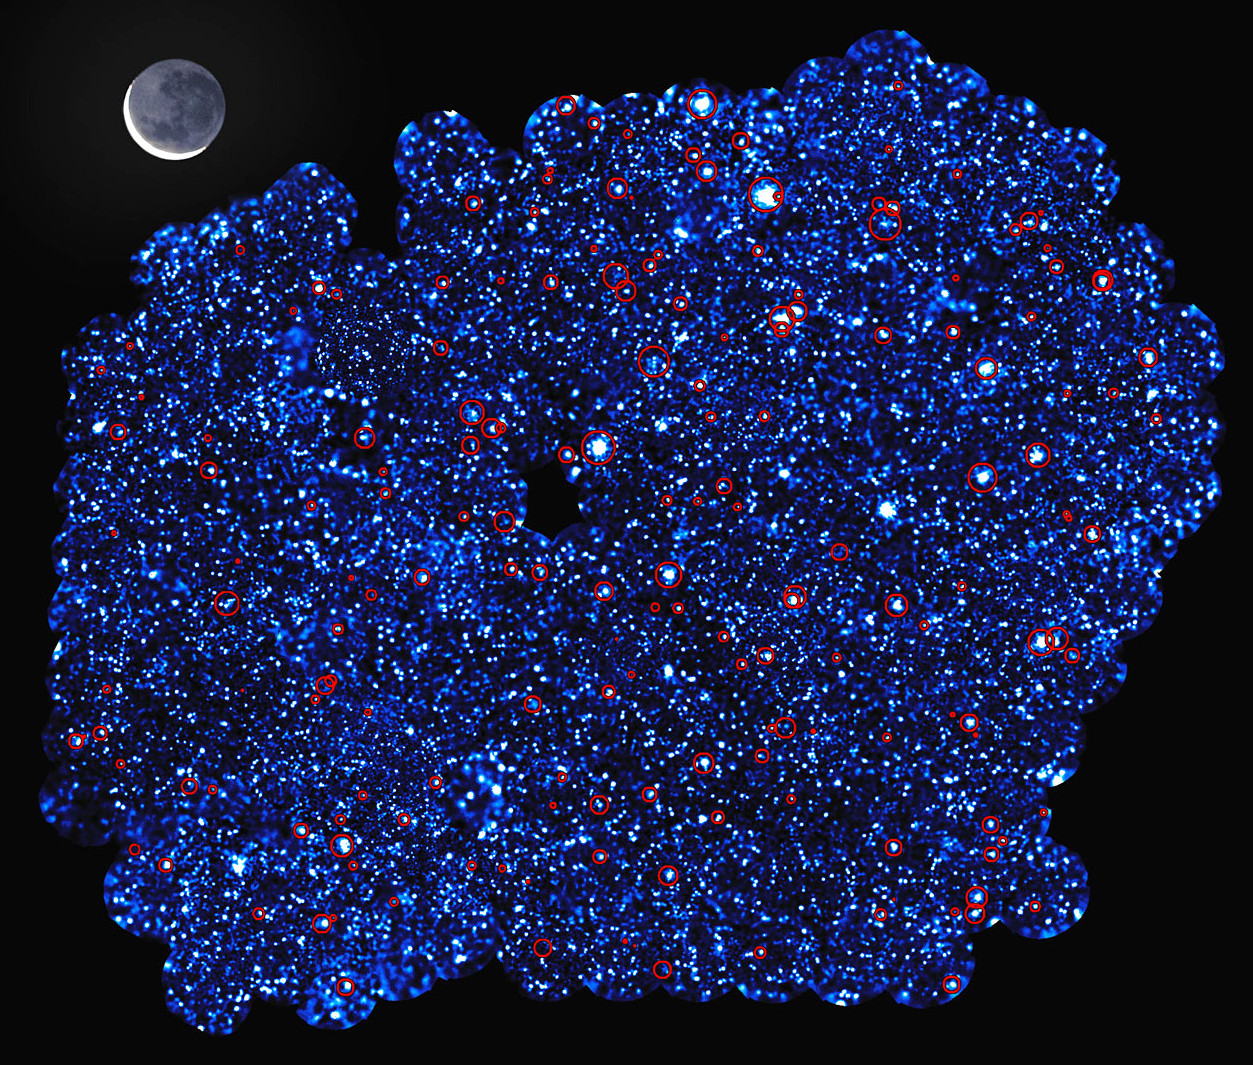 This image shows XXL-South Field (or XXL-S), one of the two fields observed by the XXL survey, with the size of the Moon for scale.  XXL is one of the largest quests for galaxy clusters ever undertaken and provides by far the best view of the deep X-ray sky yet obtained. The survey was carried out with ESA's XMM-Newton X-ray observatory. Additional vital observations to measure the distances to the galaxy clusters were made with ESO facilities. The red circles in this image show the clusters of galaxies detected in the survey. Along with the other field — XXL-North Field (or XXL-N) — around 450 of these clusters were uncovered in the survey, which mapped them back to a time when the universe was just half of its present age. The image also reveals some of the 12,000 galaxies that had very bright cores containing supermassive black holes that were detected in the field. Image credit: ESA/XMM-Newton/XXL survey consortium/(S. Snowden, L. Faccioli, F. Pacaud).